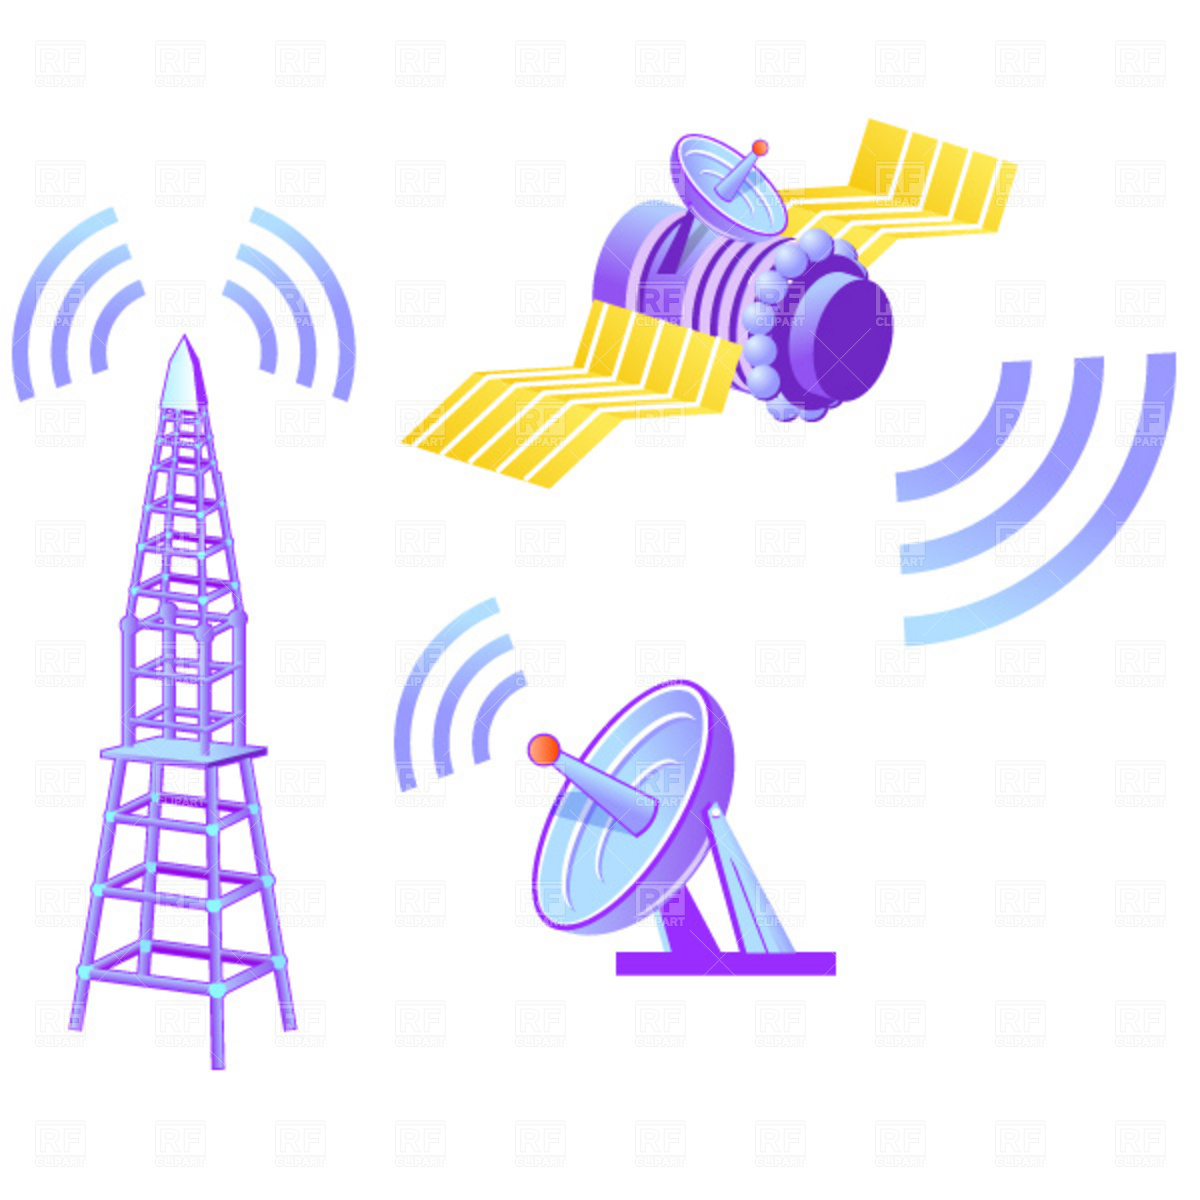 Satellite dish and tower Vector Image #1864.